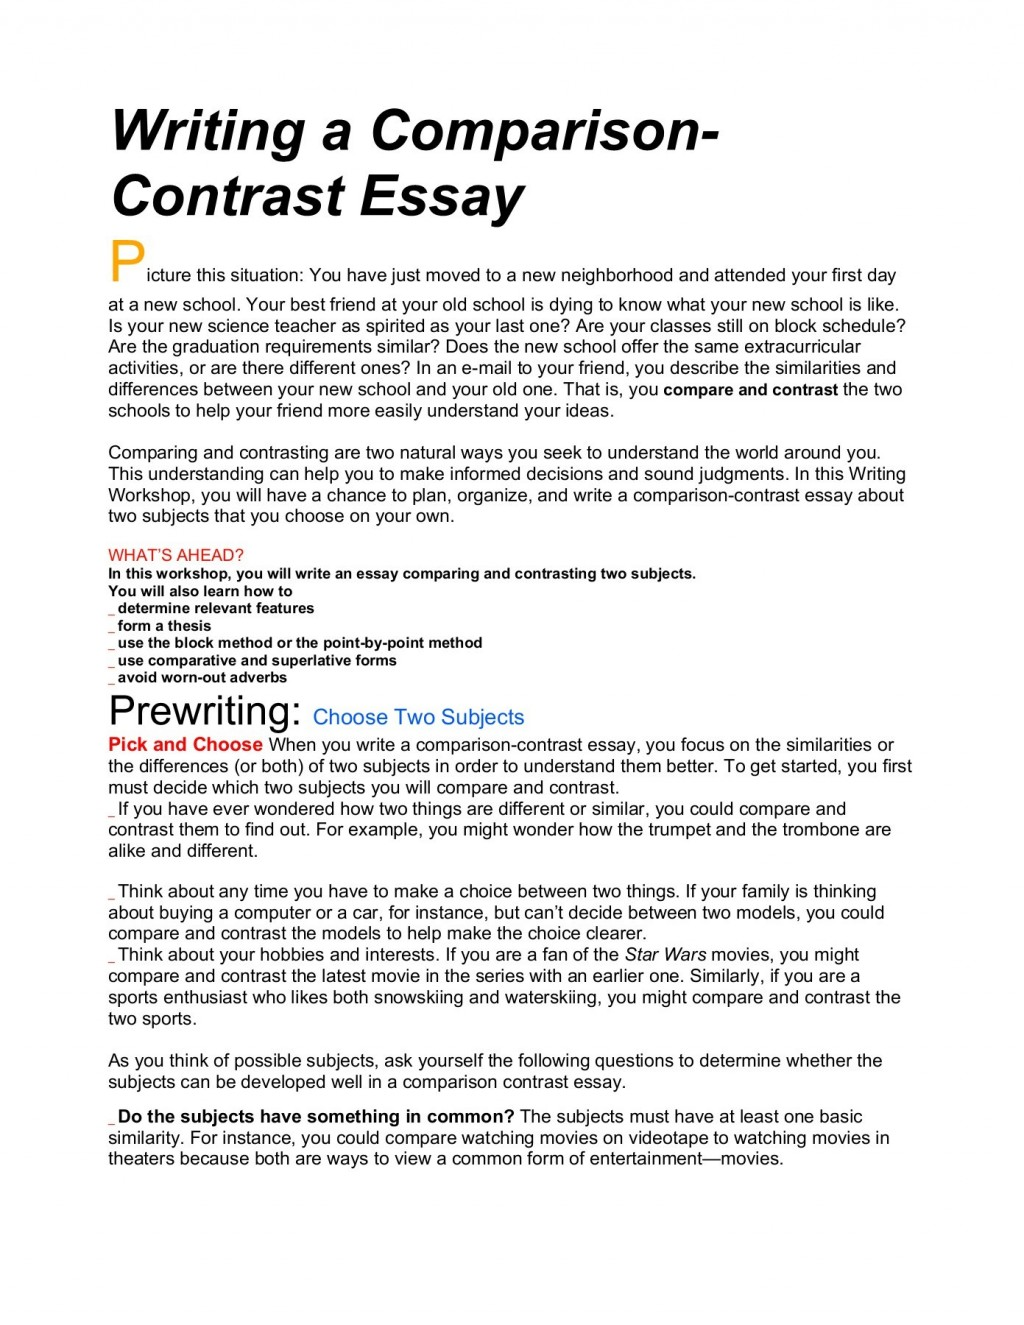 012 How To Conclude Compare And Contrast Essay Example Fantastic A Start Writing Comparison Write Begin Large